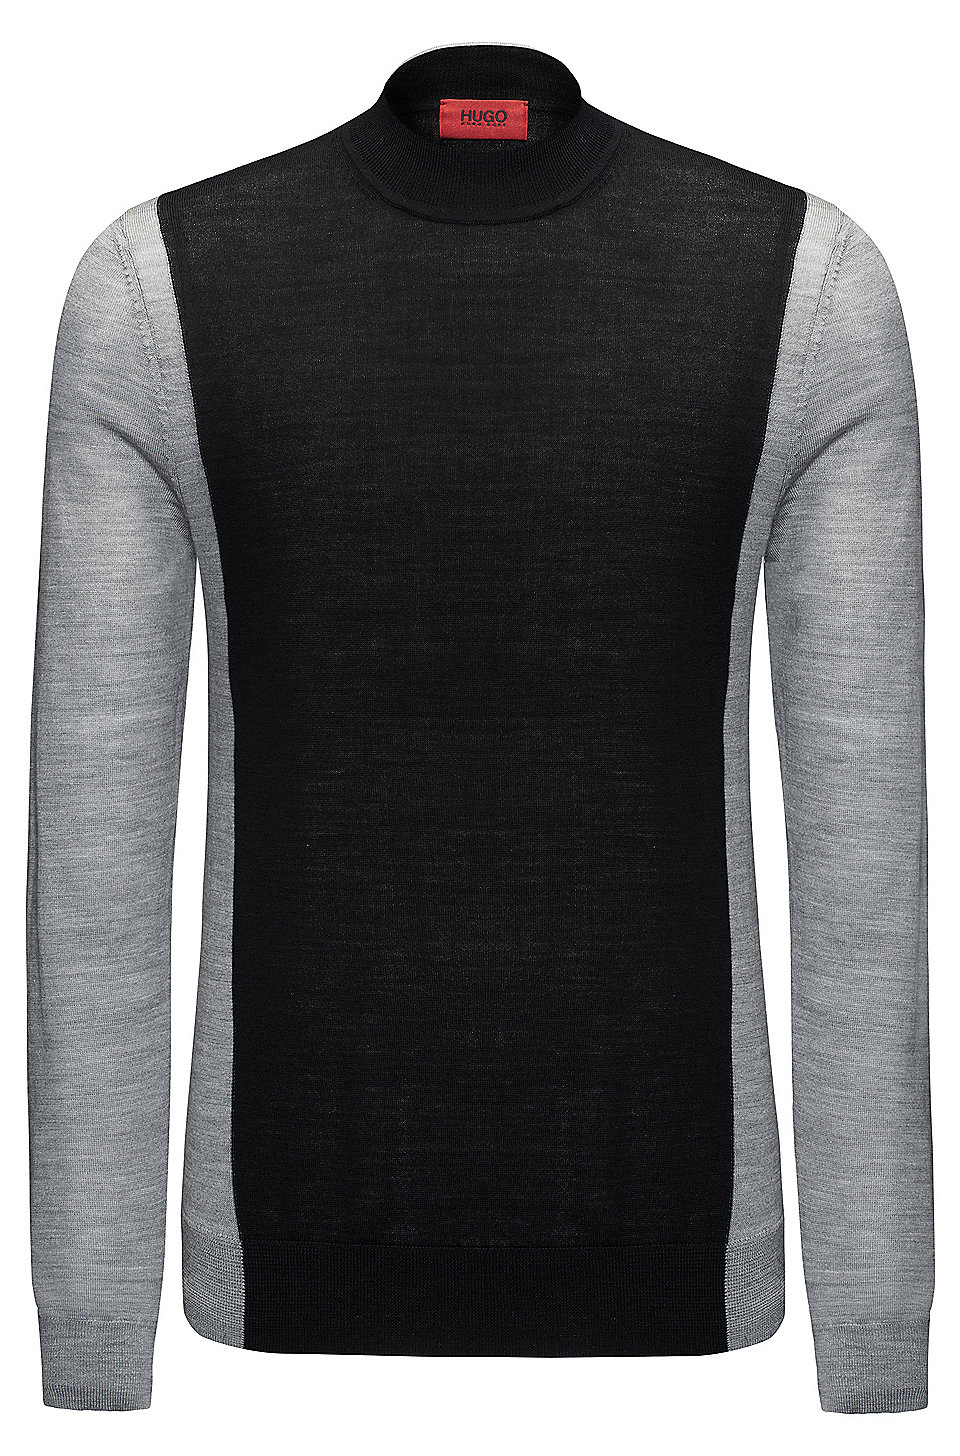 Men's Sweaters & Sweatshirts | HUGO BOSS®